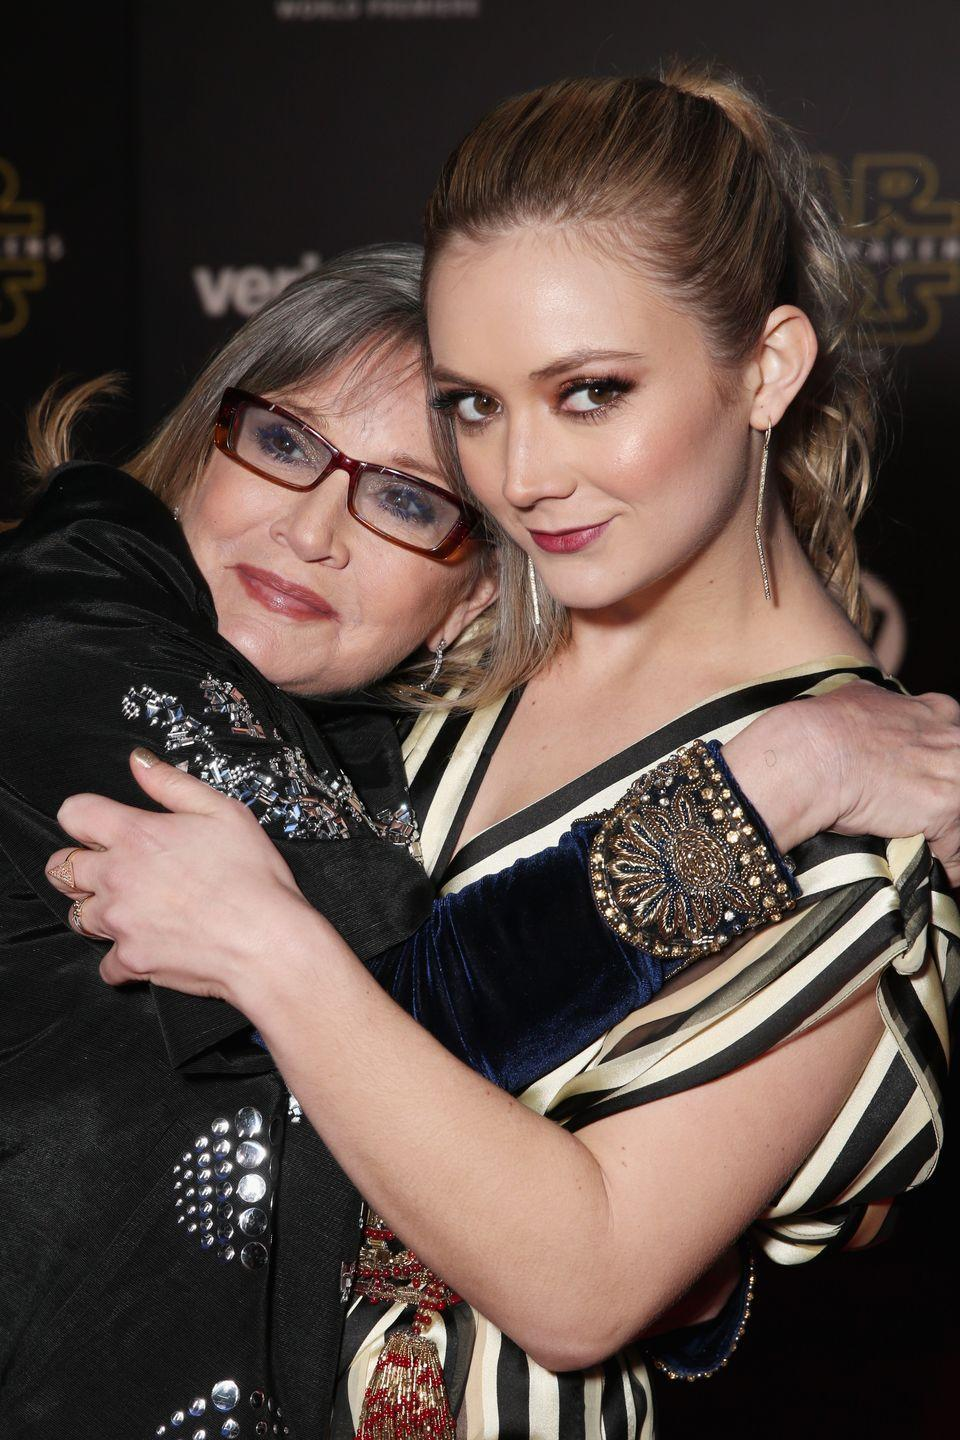 "<p>""<a href=""https://www.usmagazine.com/celebrity-news/pictures/sweetest-things-billie-lourd-has-said-about-carrie-fisher/"" rel=""nofollow noopener"" target=""_blank"" data-ylk=""slk:She taught"" class=""link rapid-noclick-resp"">She taught</a> me by her own example, that the most evolved person is seemingly a contradiction — they are both the strongest and the most vulnerable person in the room."" </p>"